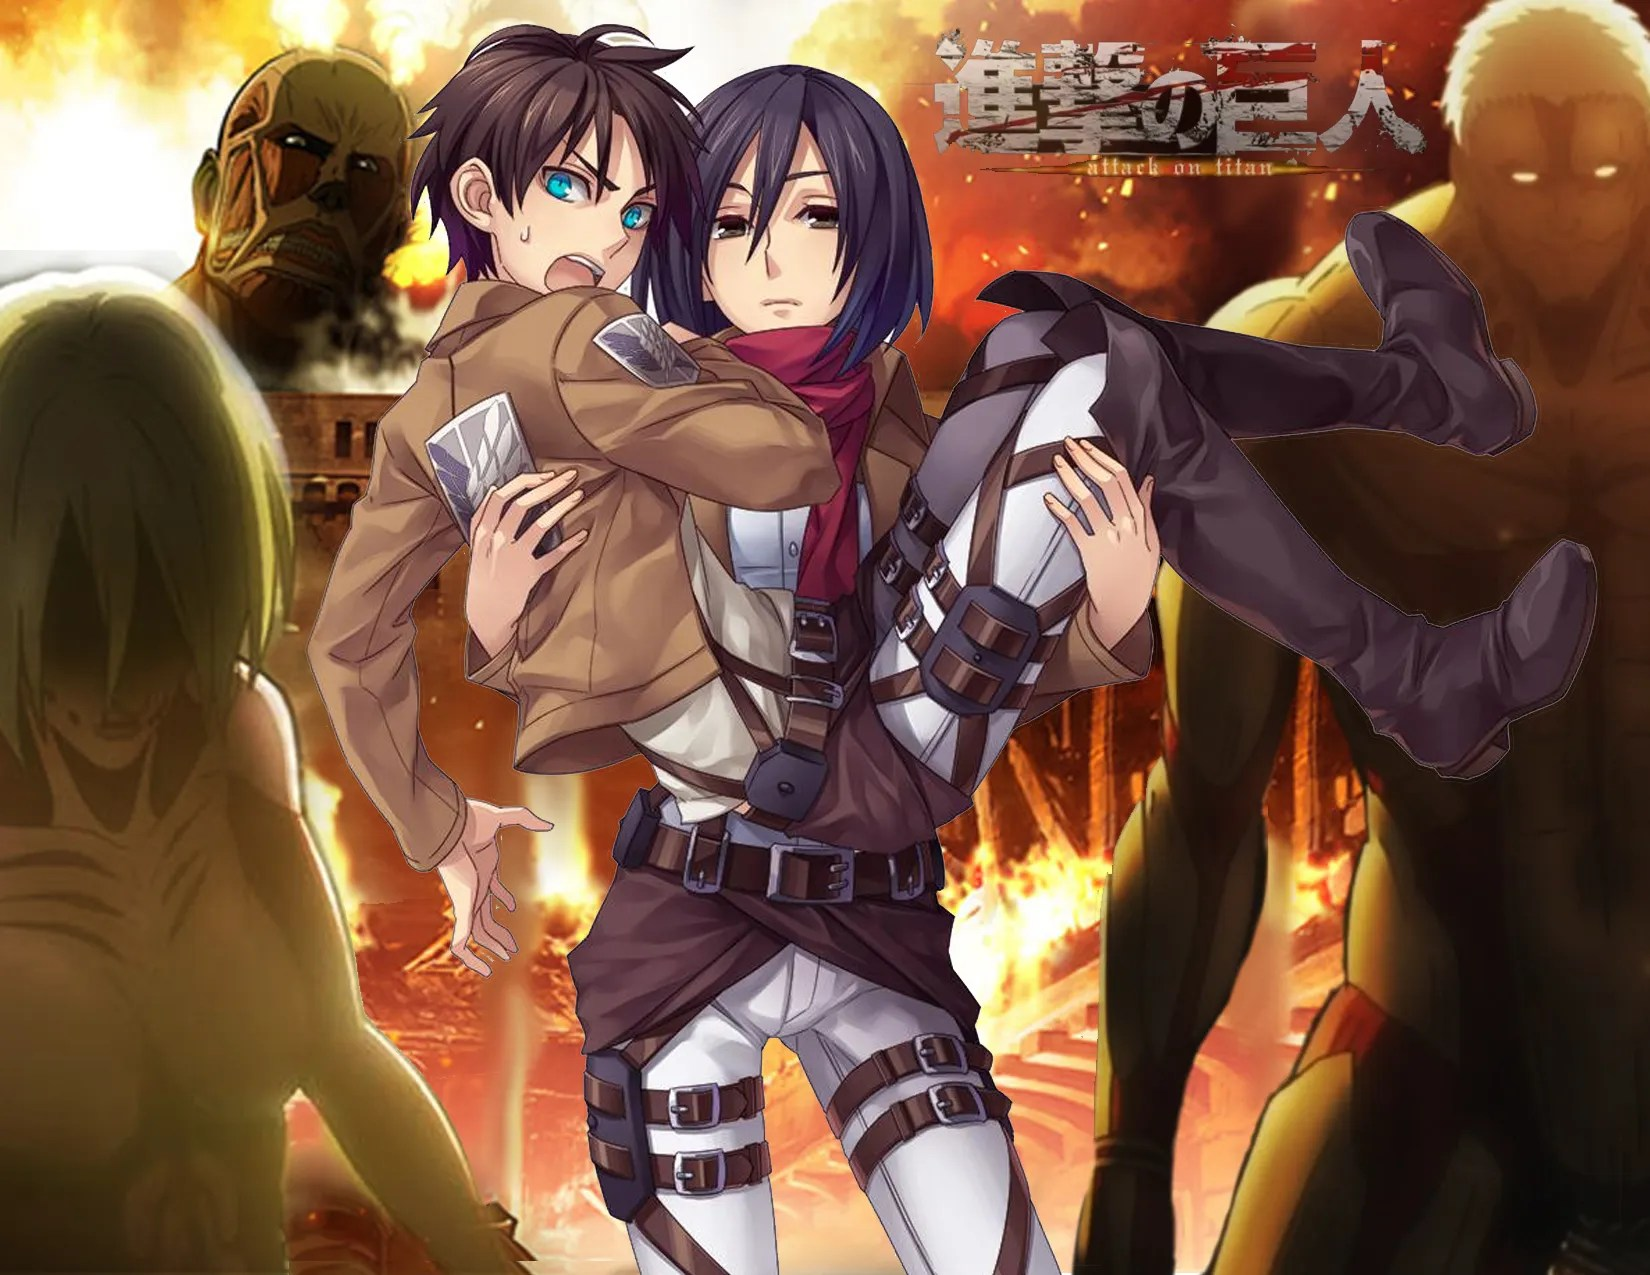 Attack On Titan Before The Fall Wallpaper 8 Fantastic Attack On Titan Wallpapers Daily Anime Art